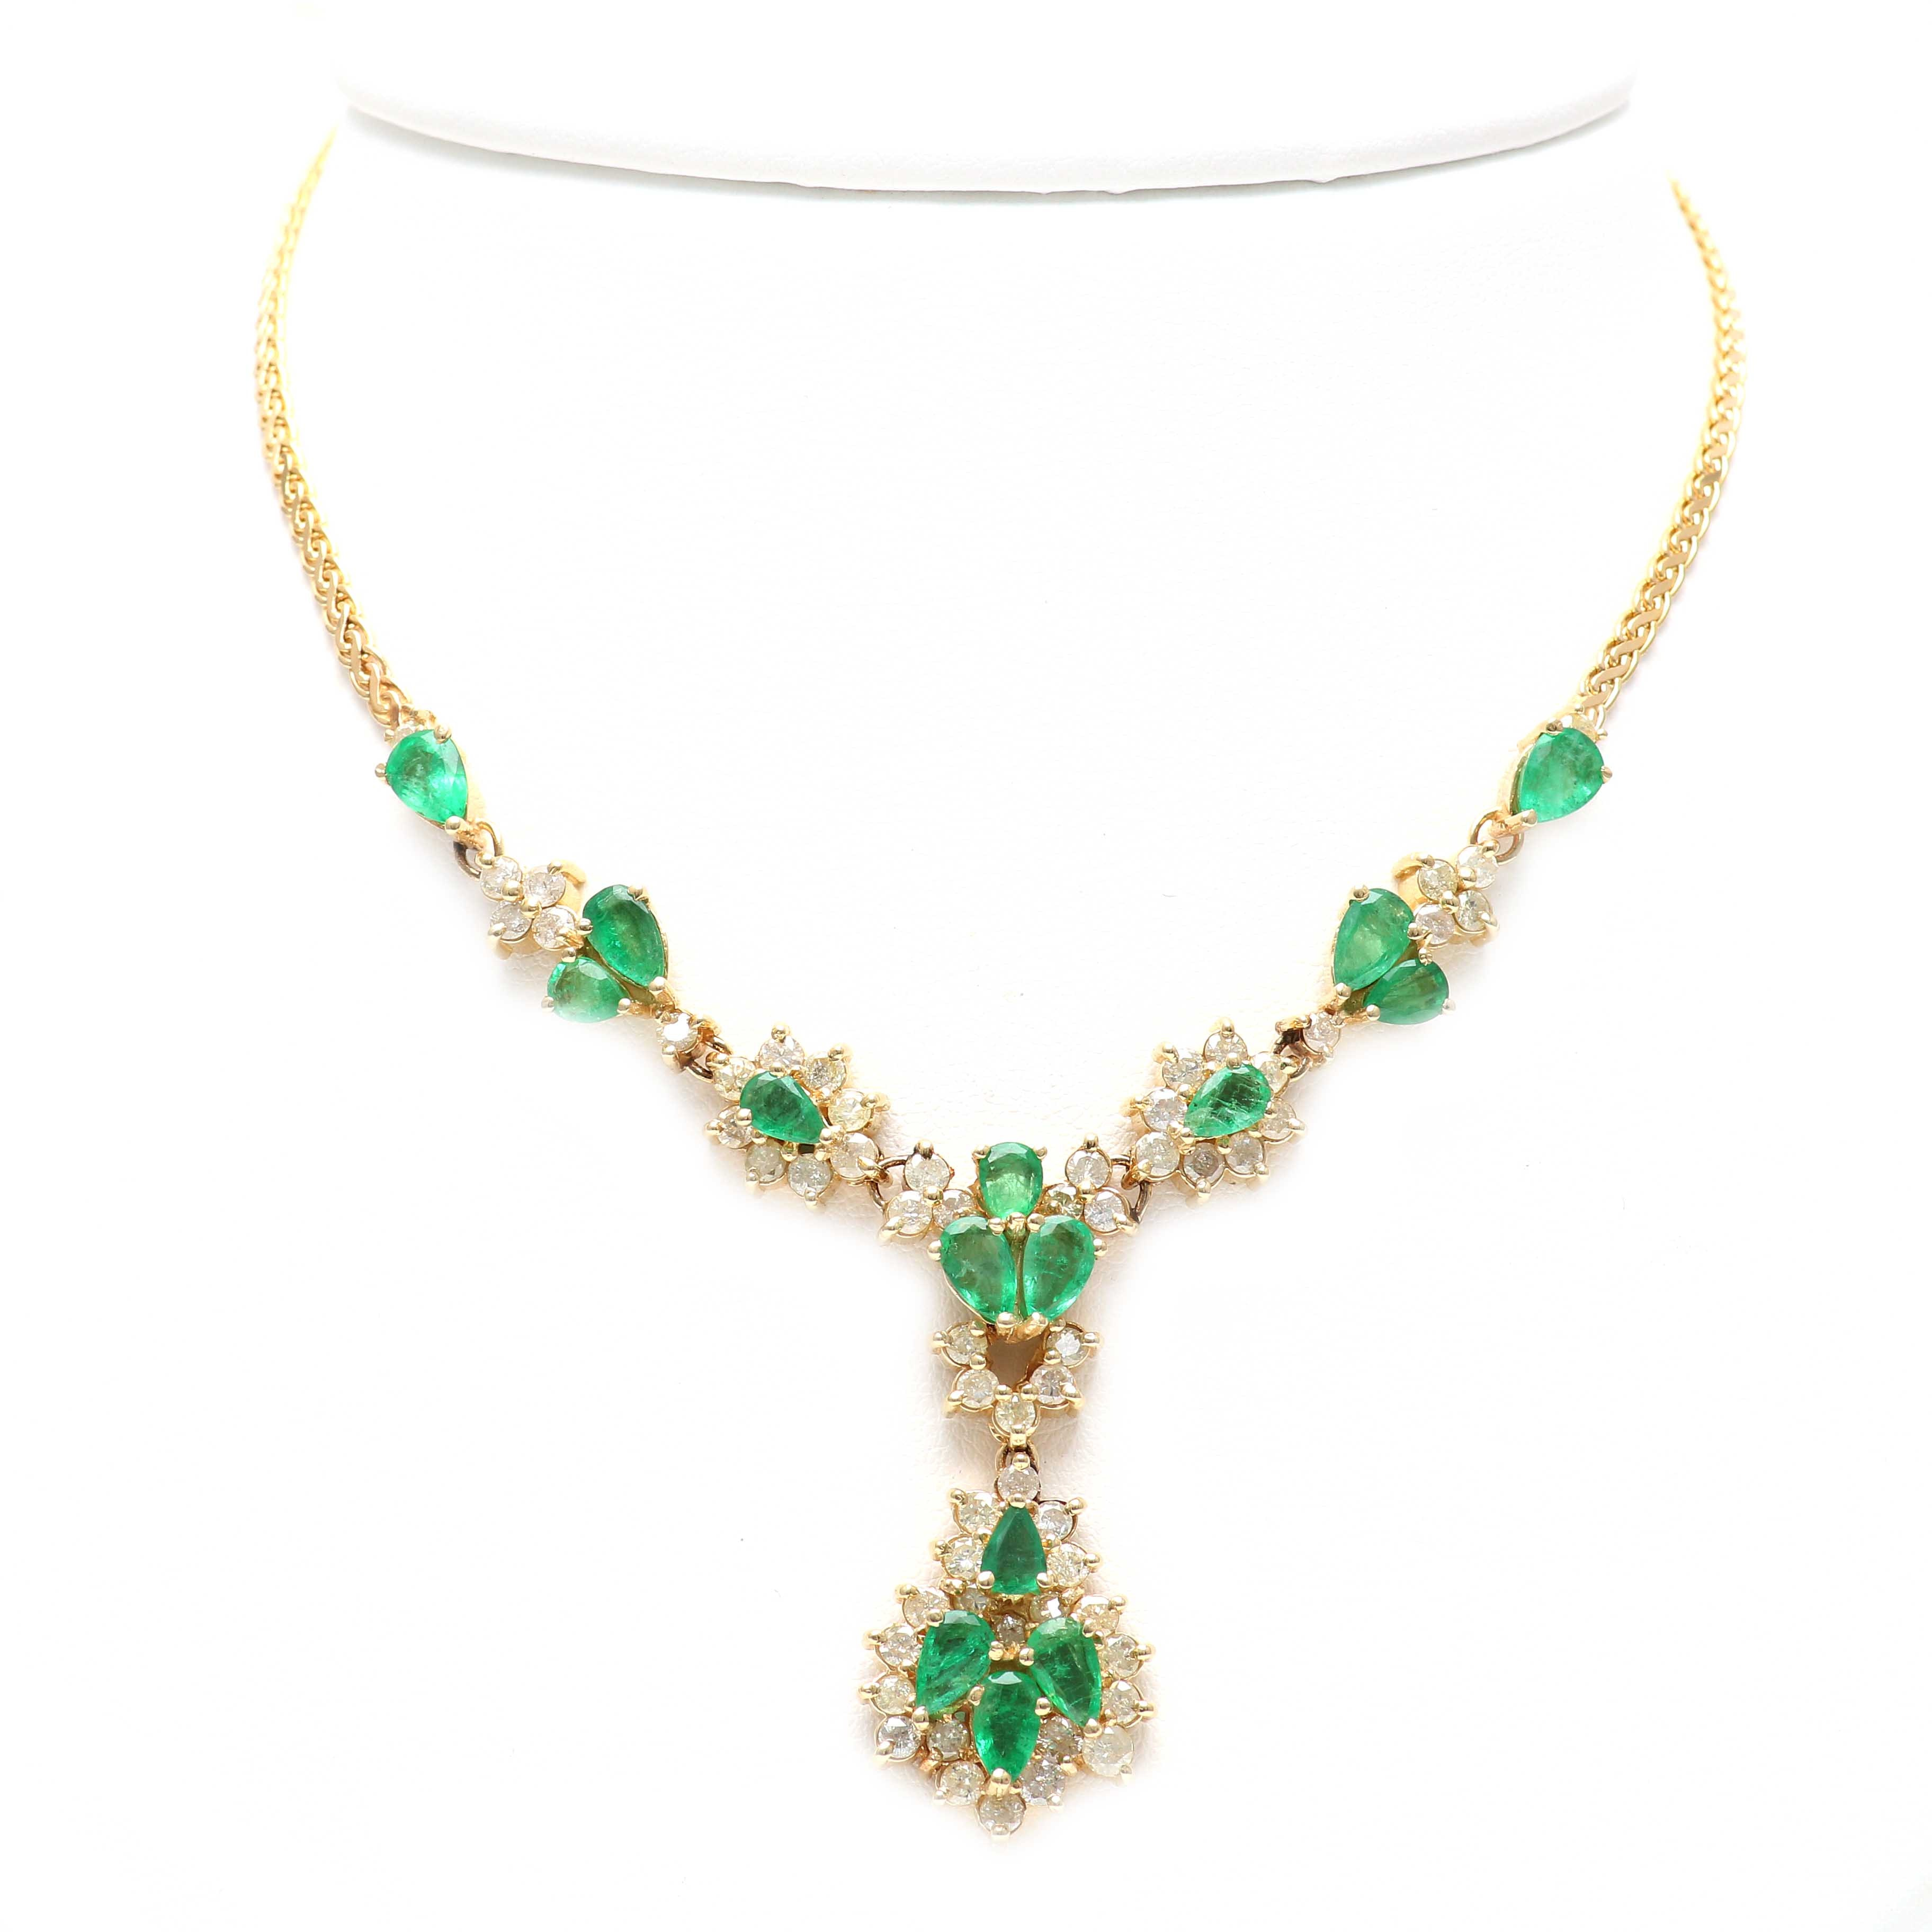 14K Yellow Gold Emerald and 3.03 CTW Diamond Necklace